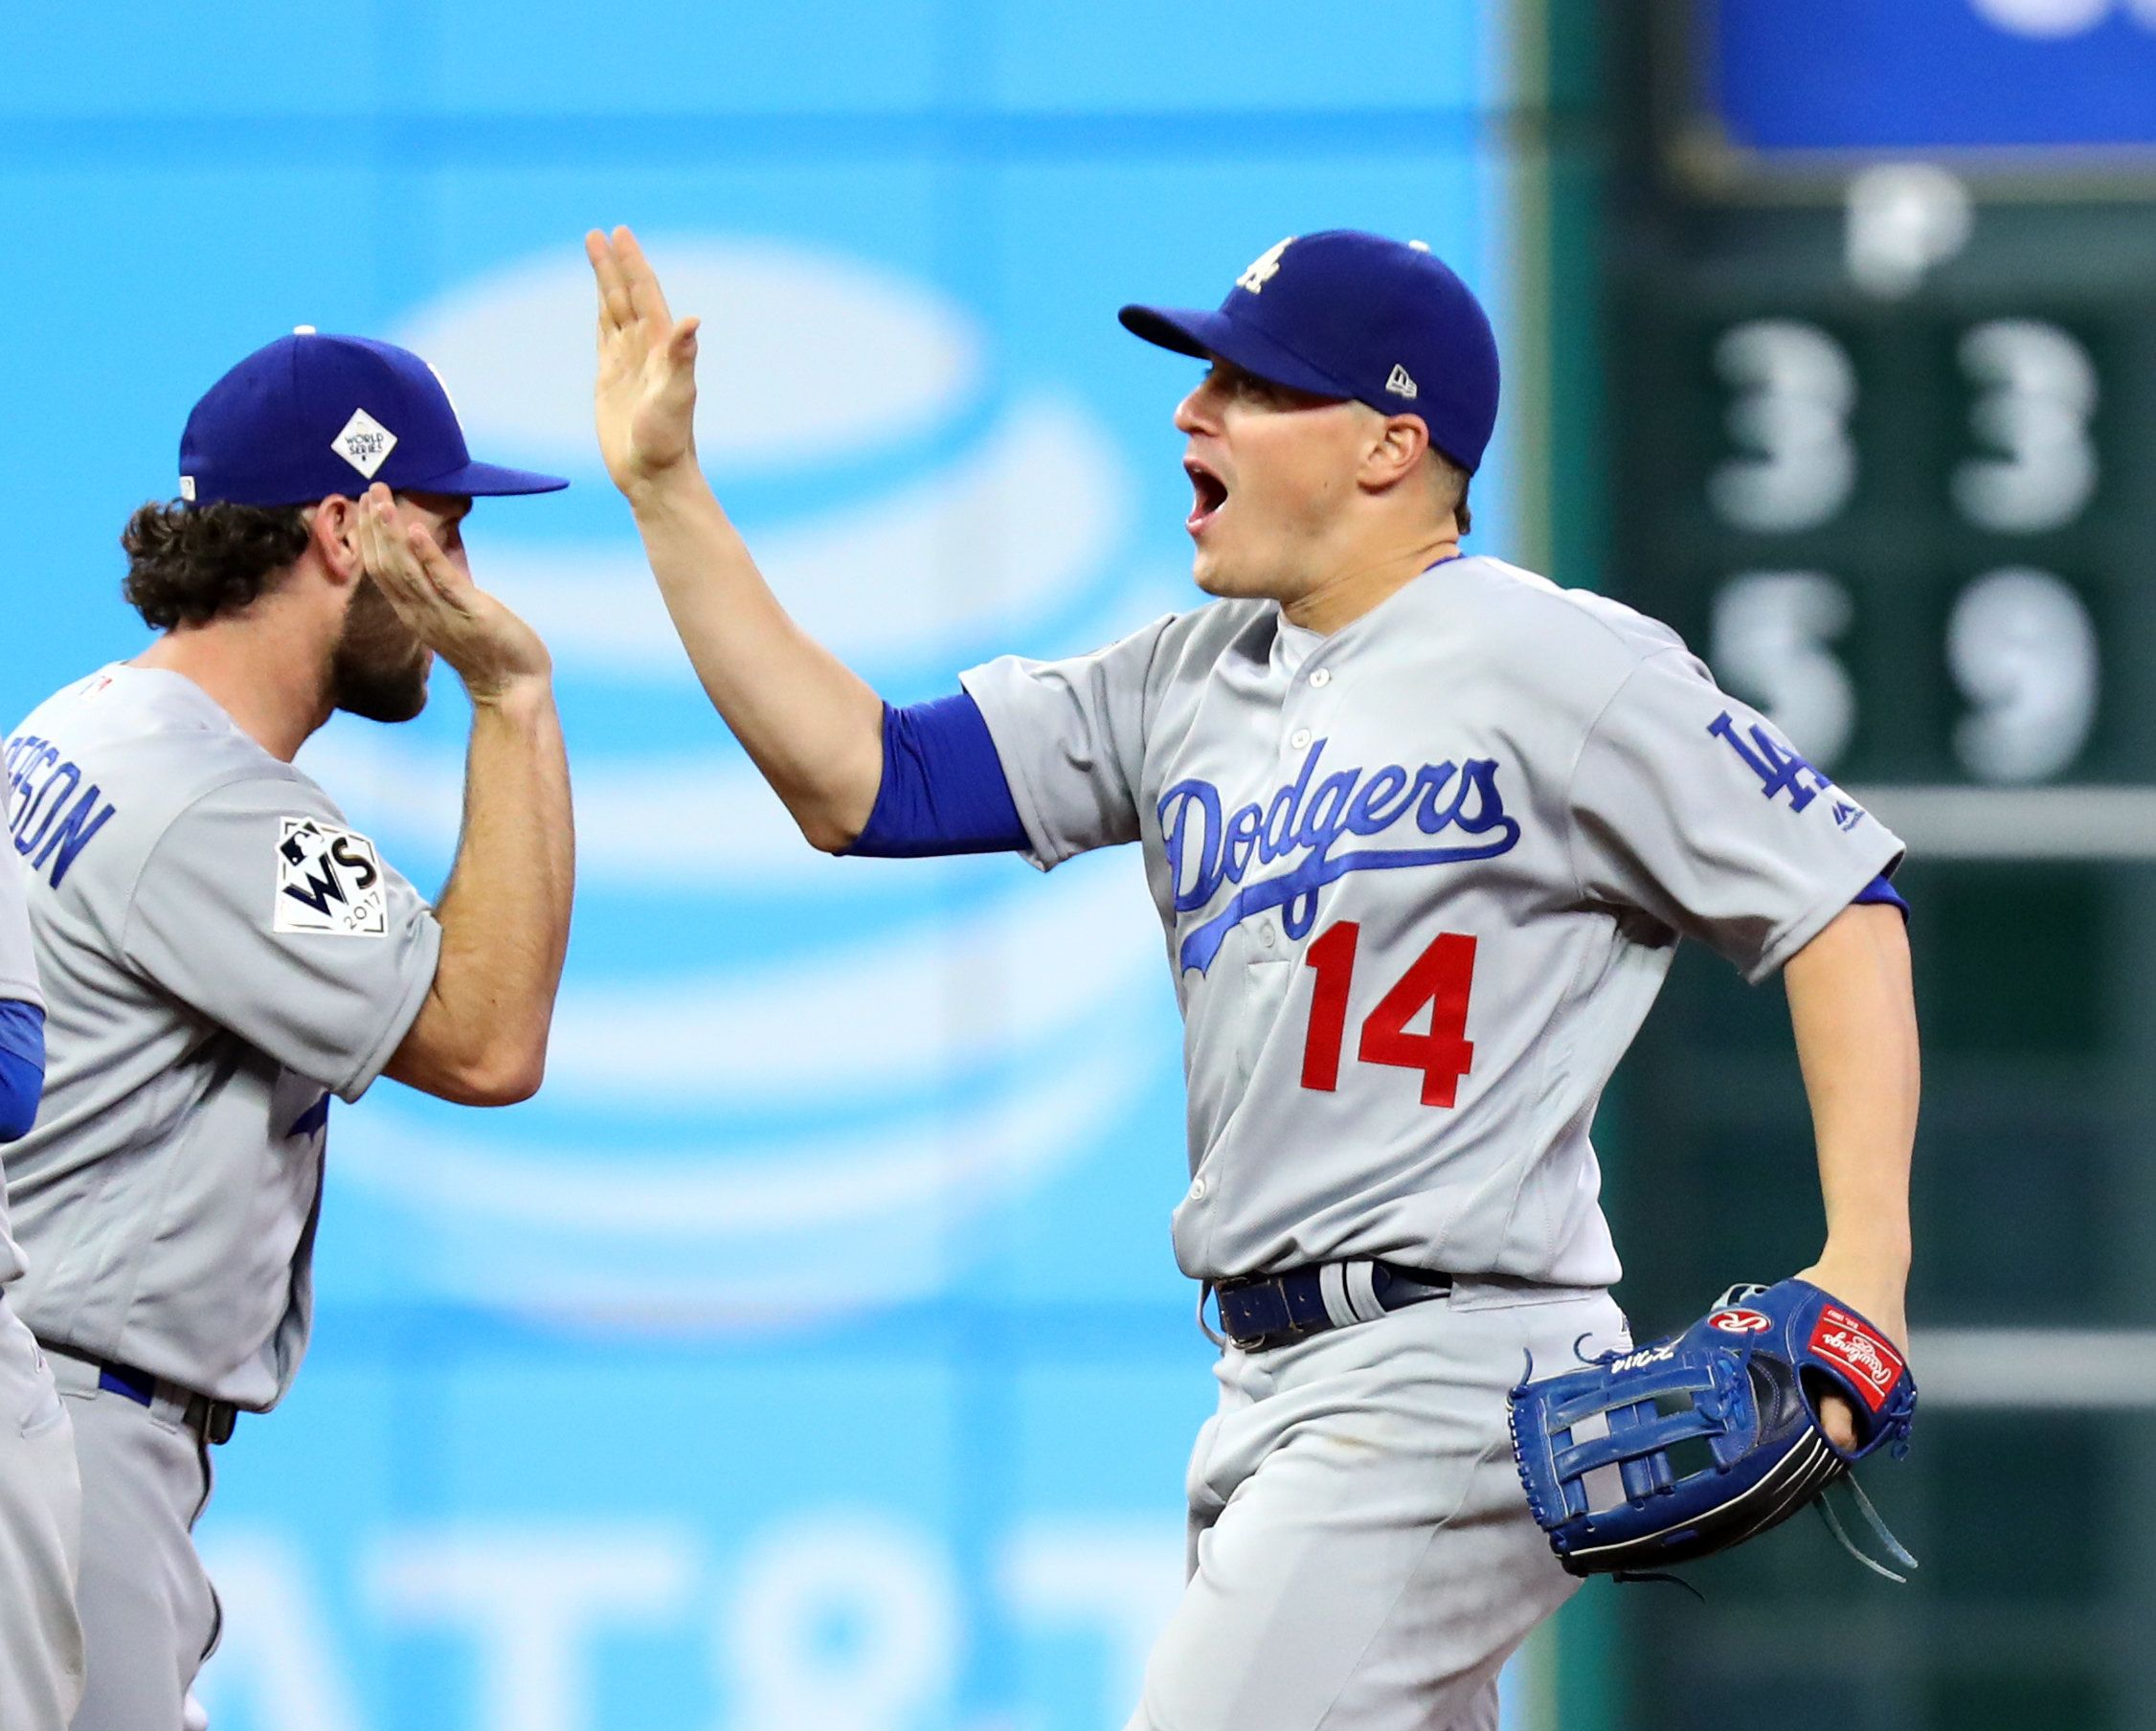 HOUSTON, TX - OCTOBER 28:  Enrique Hernandez #14 of the Los Angeles Dodgers celebrates with teammates after Game 4 of the 2017 World Series against the Houston Astros at Minute Maid Park on Saturday, October 28, 2017 in Houston, Texas. The Dodgers defeated the Astros 6-2. (Photo by Alex Trautwig/MLB Photos via Getty Images)